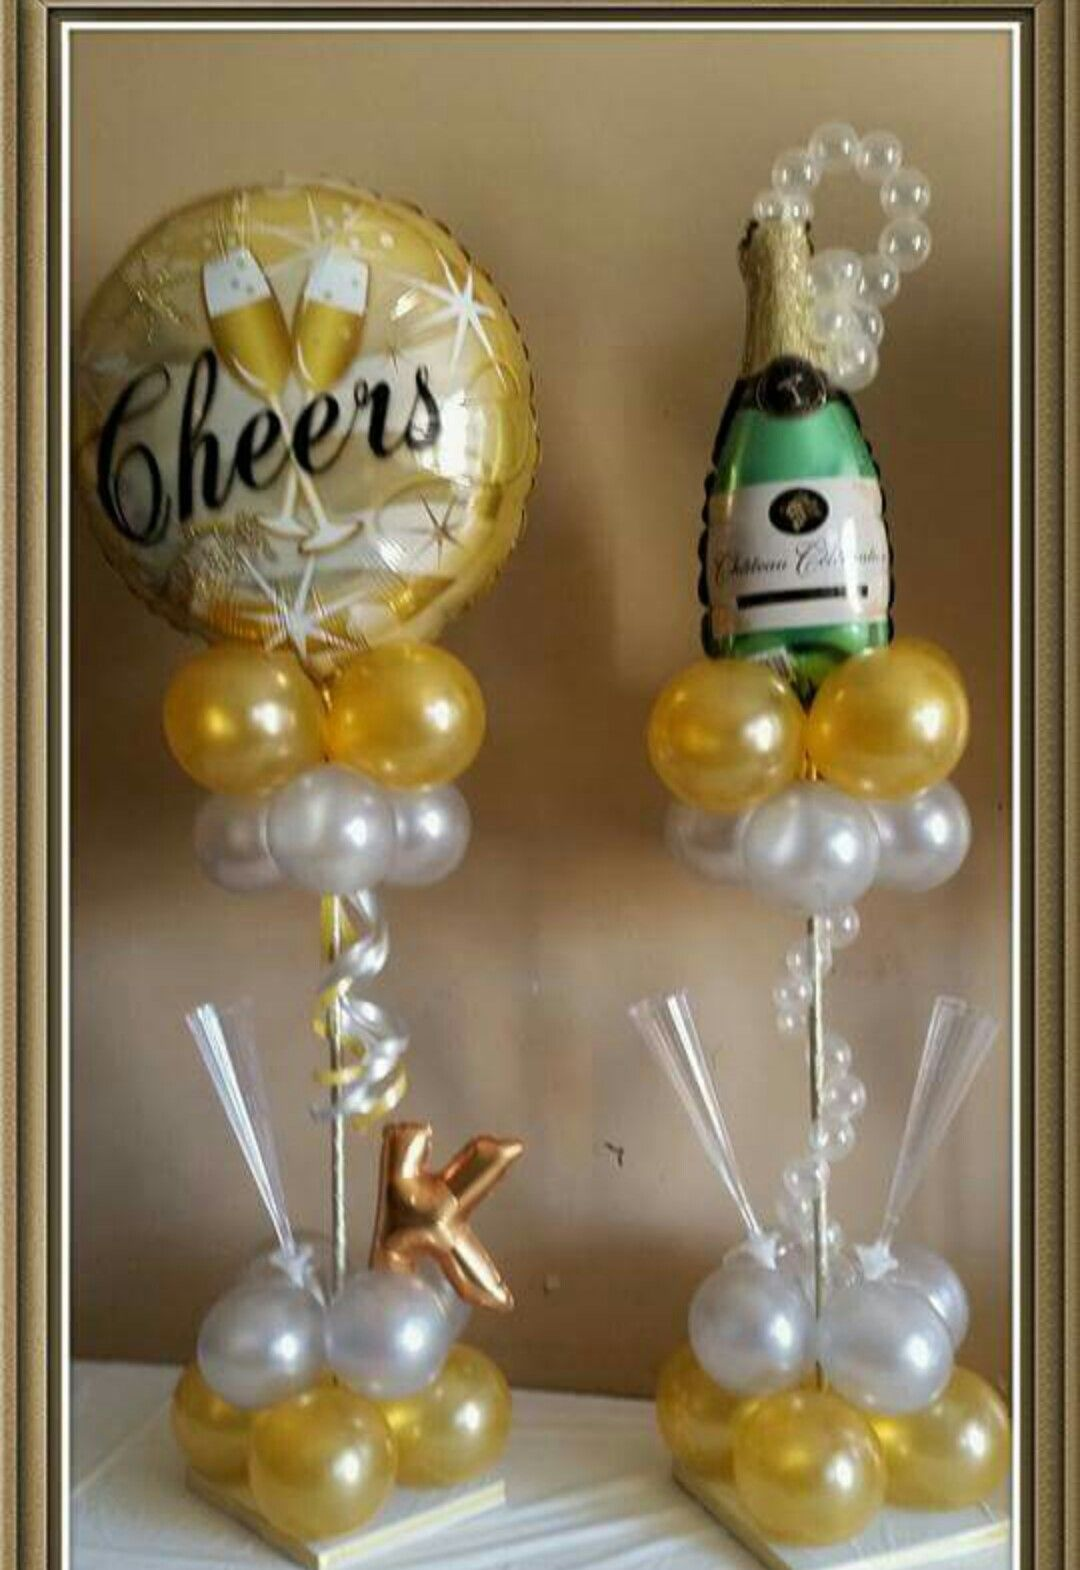 NEW YEAR'S BALLOON ART. | ℙΩℙ*••ʄ!ZZ*••CLIƝҜ ...